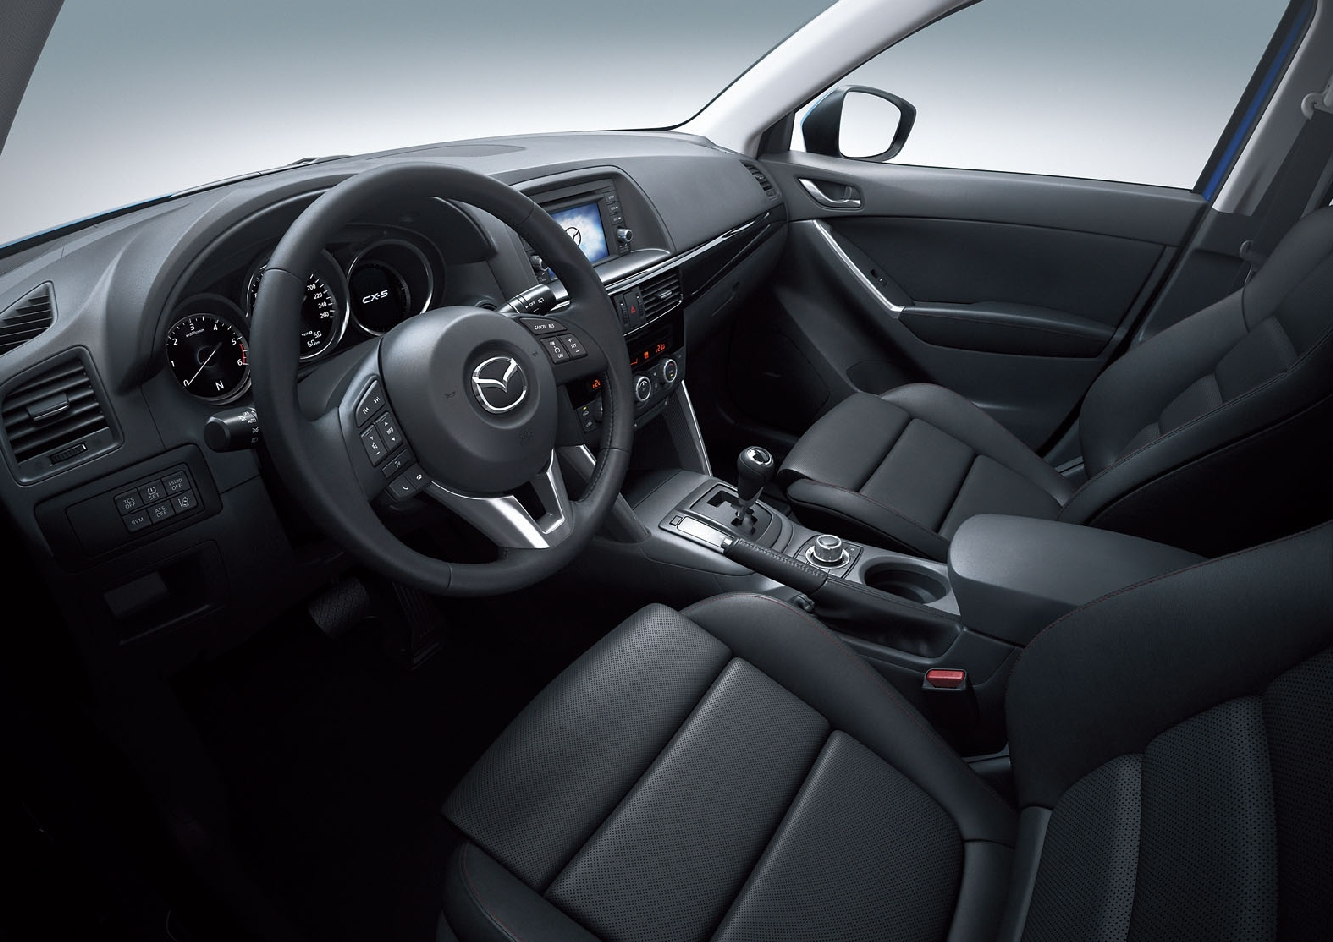 Mazda CX-5. This interior photo gives some tantalizing hints about Mazda's